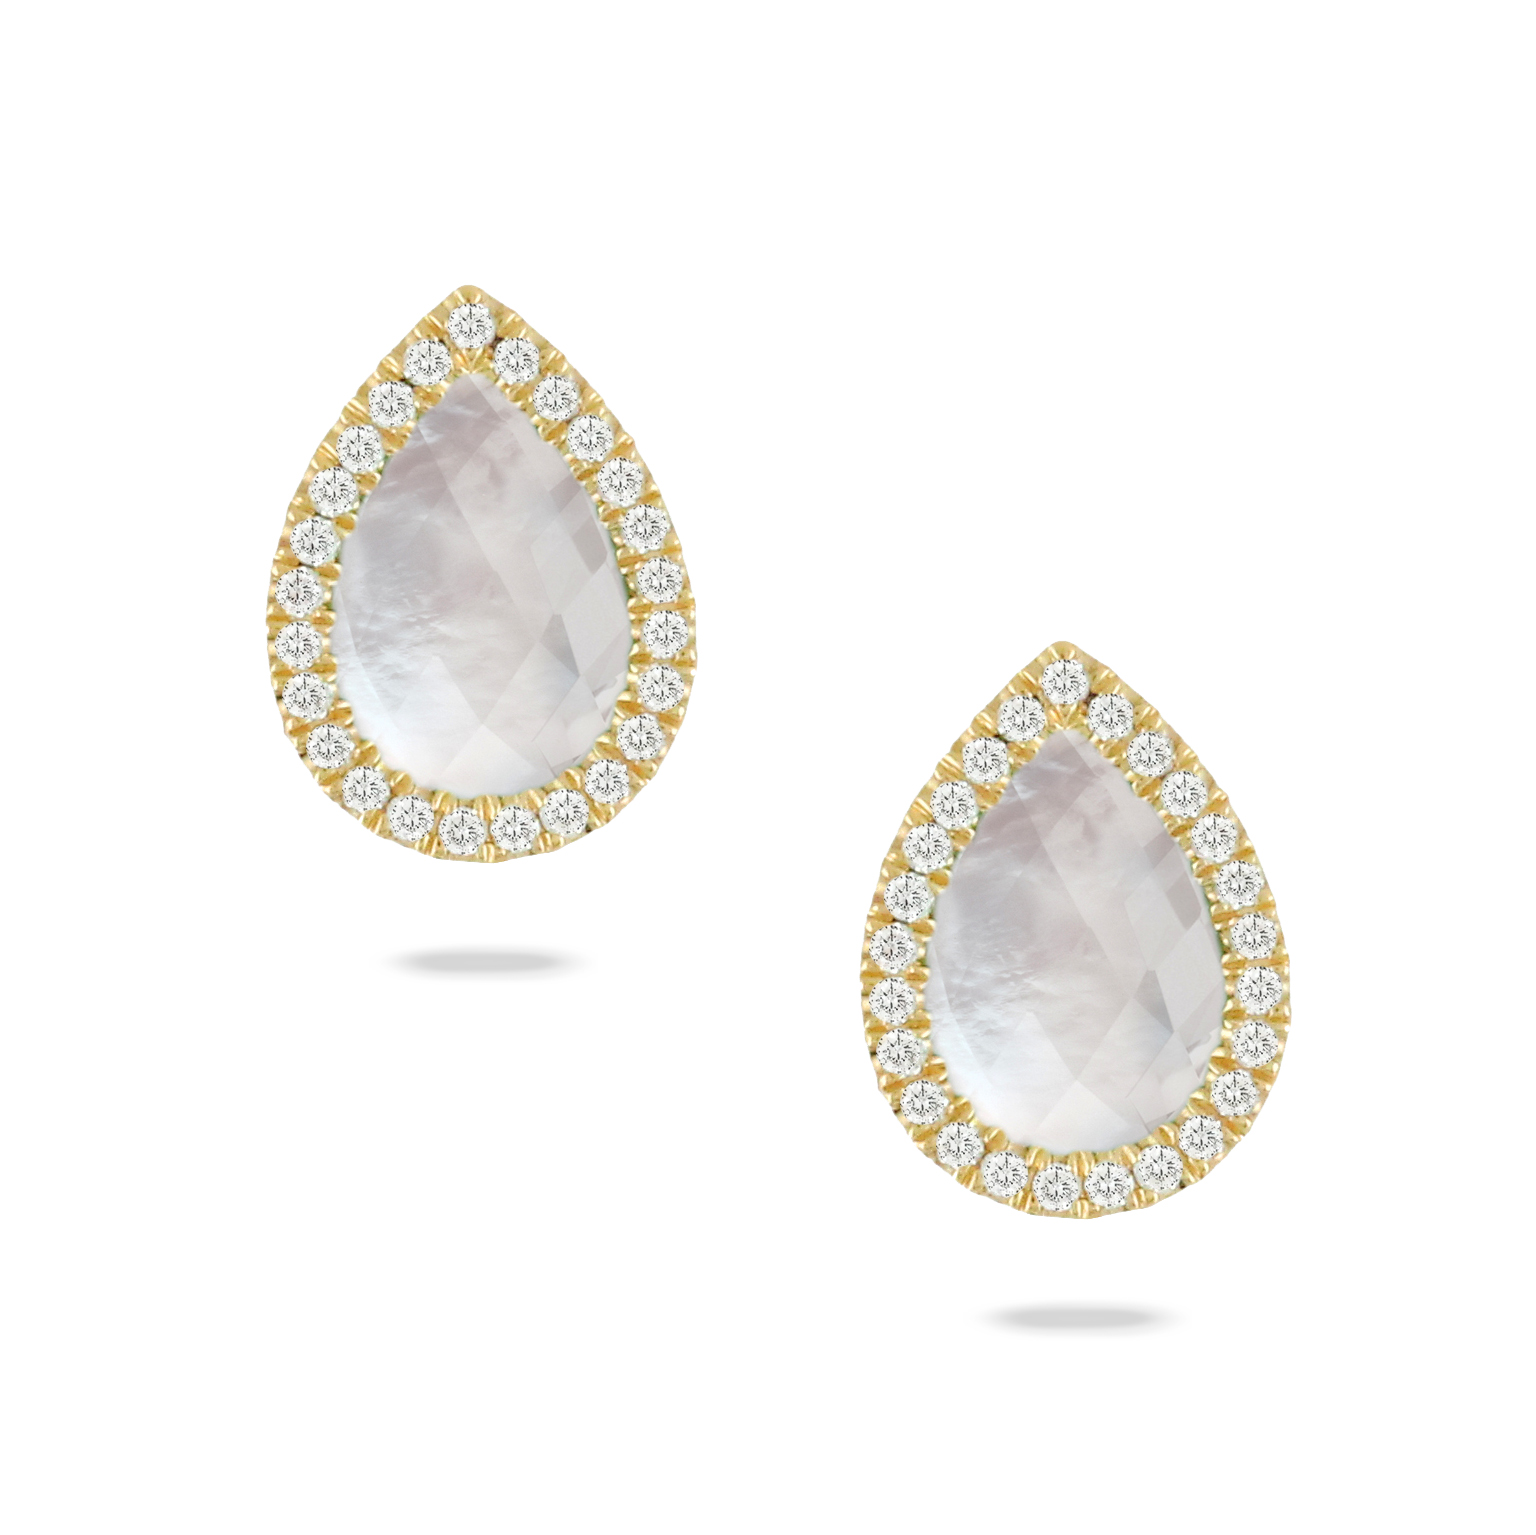 Turn heads with R. Gregory's earrings. Browse delicate models with pearls, crosses, and flowers. Our earrings come in gold or platinum in more than 700 styles.